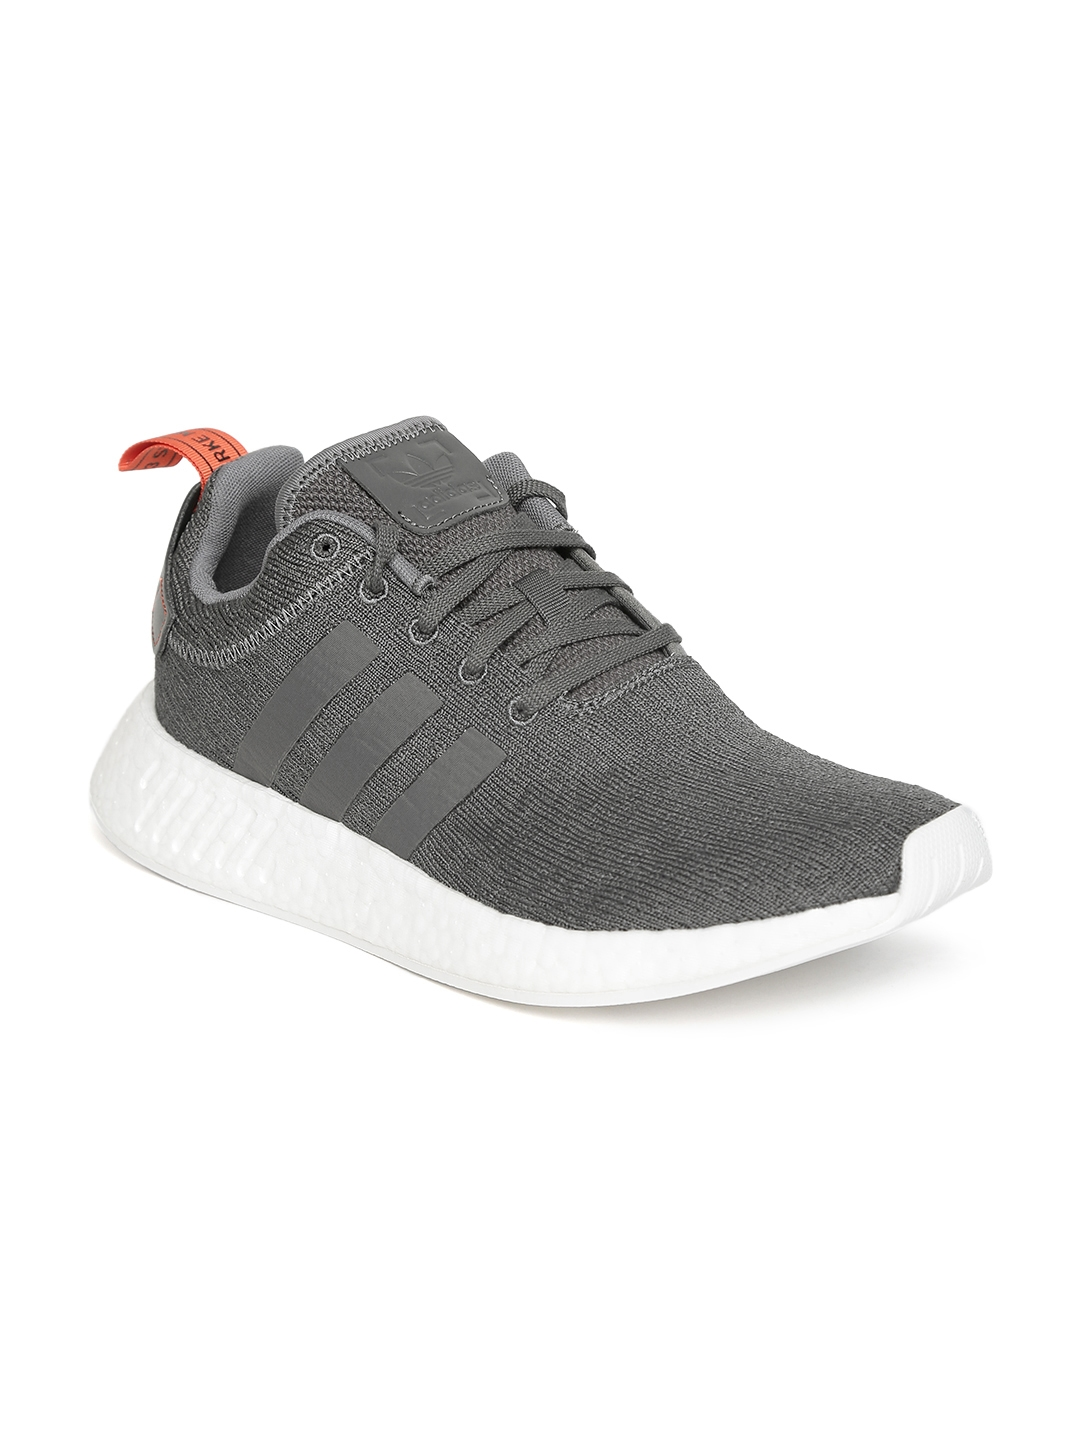 af0927acd11e4 Buy ADIDAS Originals Men Charcoal Grey NMD R2 Sneakers - Casual ...